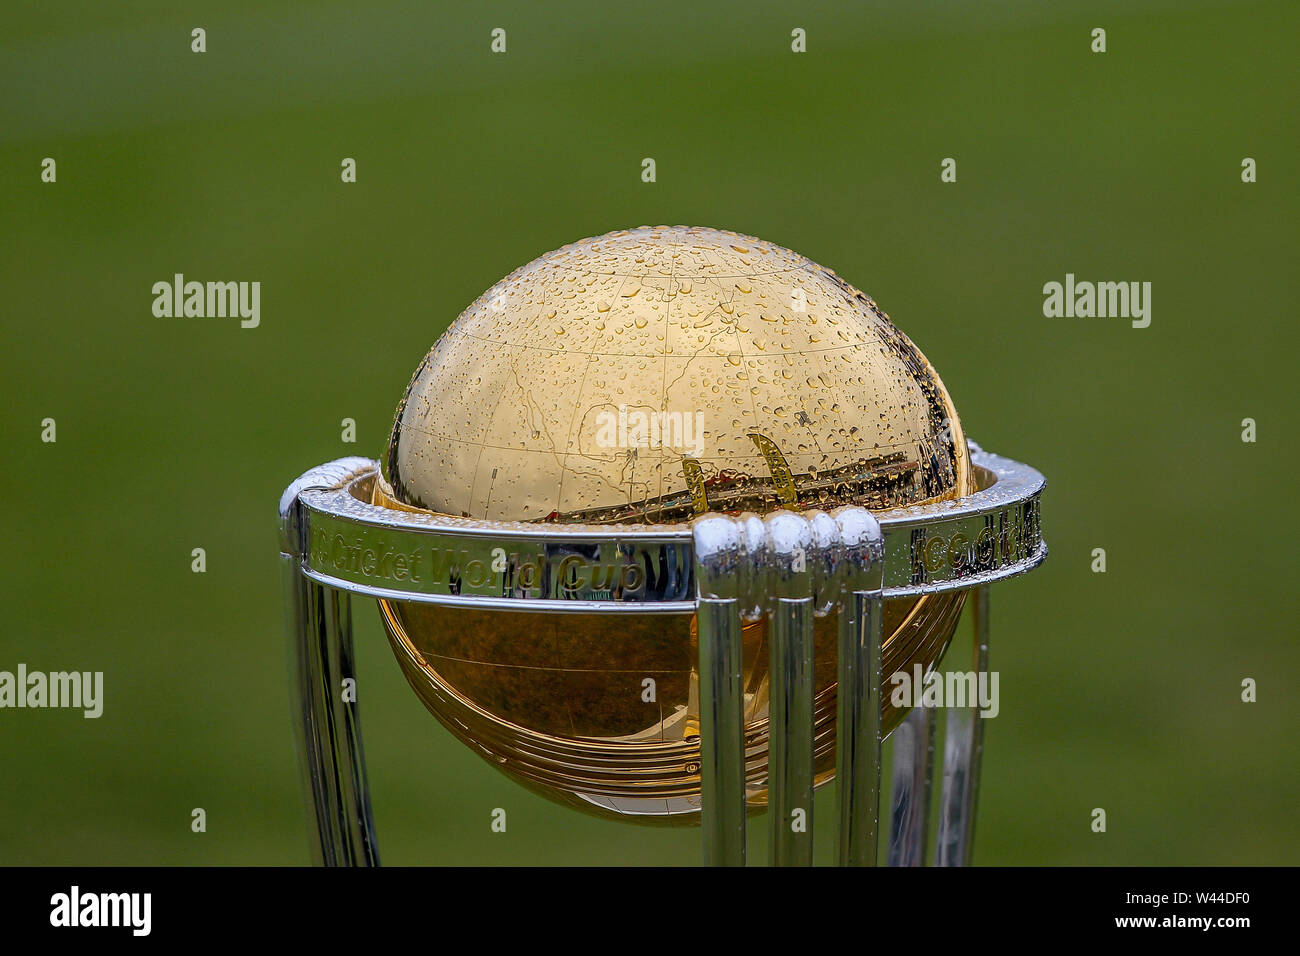 CHESTER LE STREET, ENGLAND. 19th July 2019. The Cricket World Cup during the Vitality T20 Blast match between Durham County Cricket Club and Northamptonshire County Cricket Club at Emirates Riverside, Chester le Street on Friday 19th July 2019. (Credit: Mark Fletcher   MI News ) Credit: MI News & Sport /Alamy Live News - Stock Image